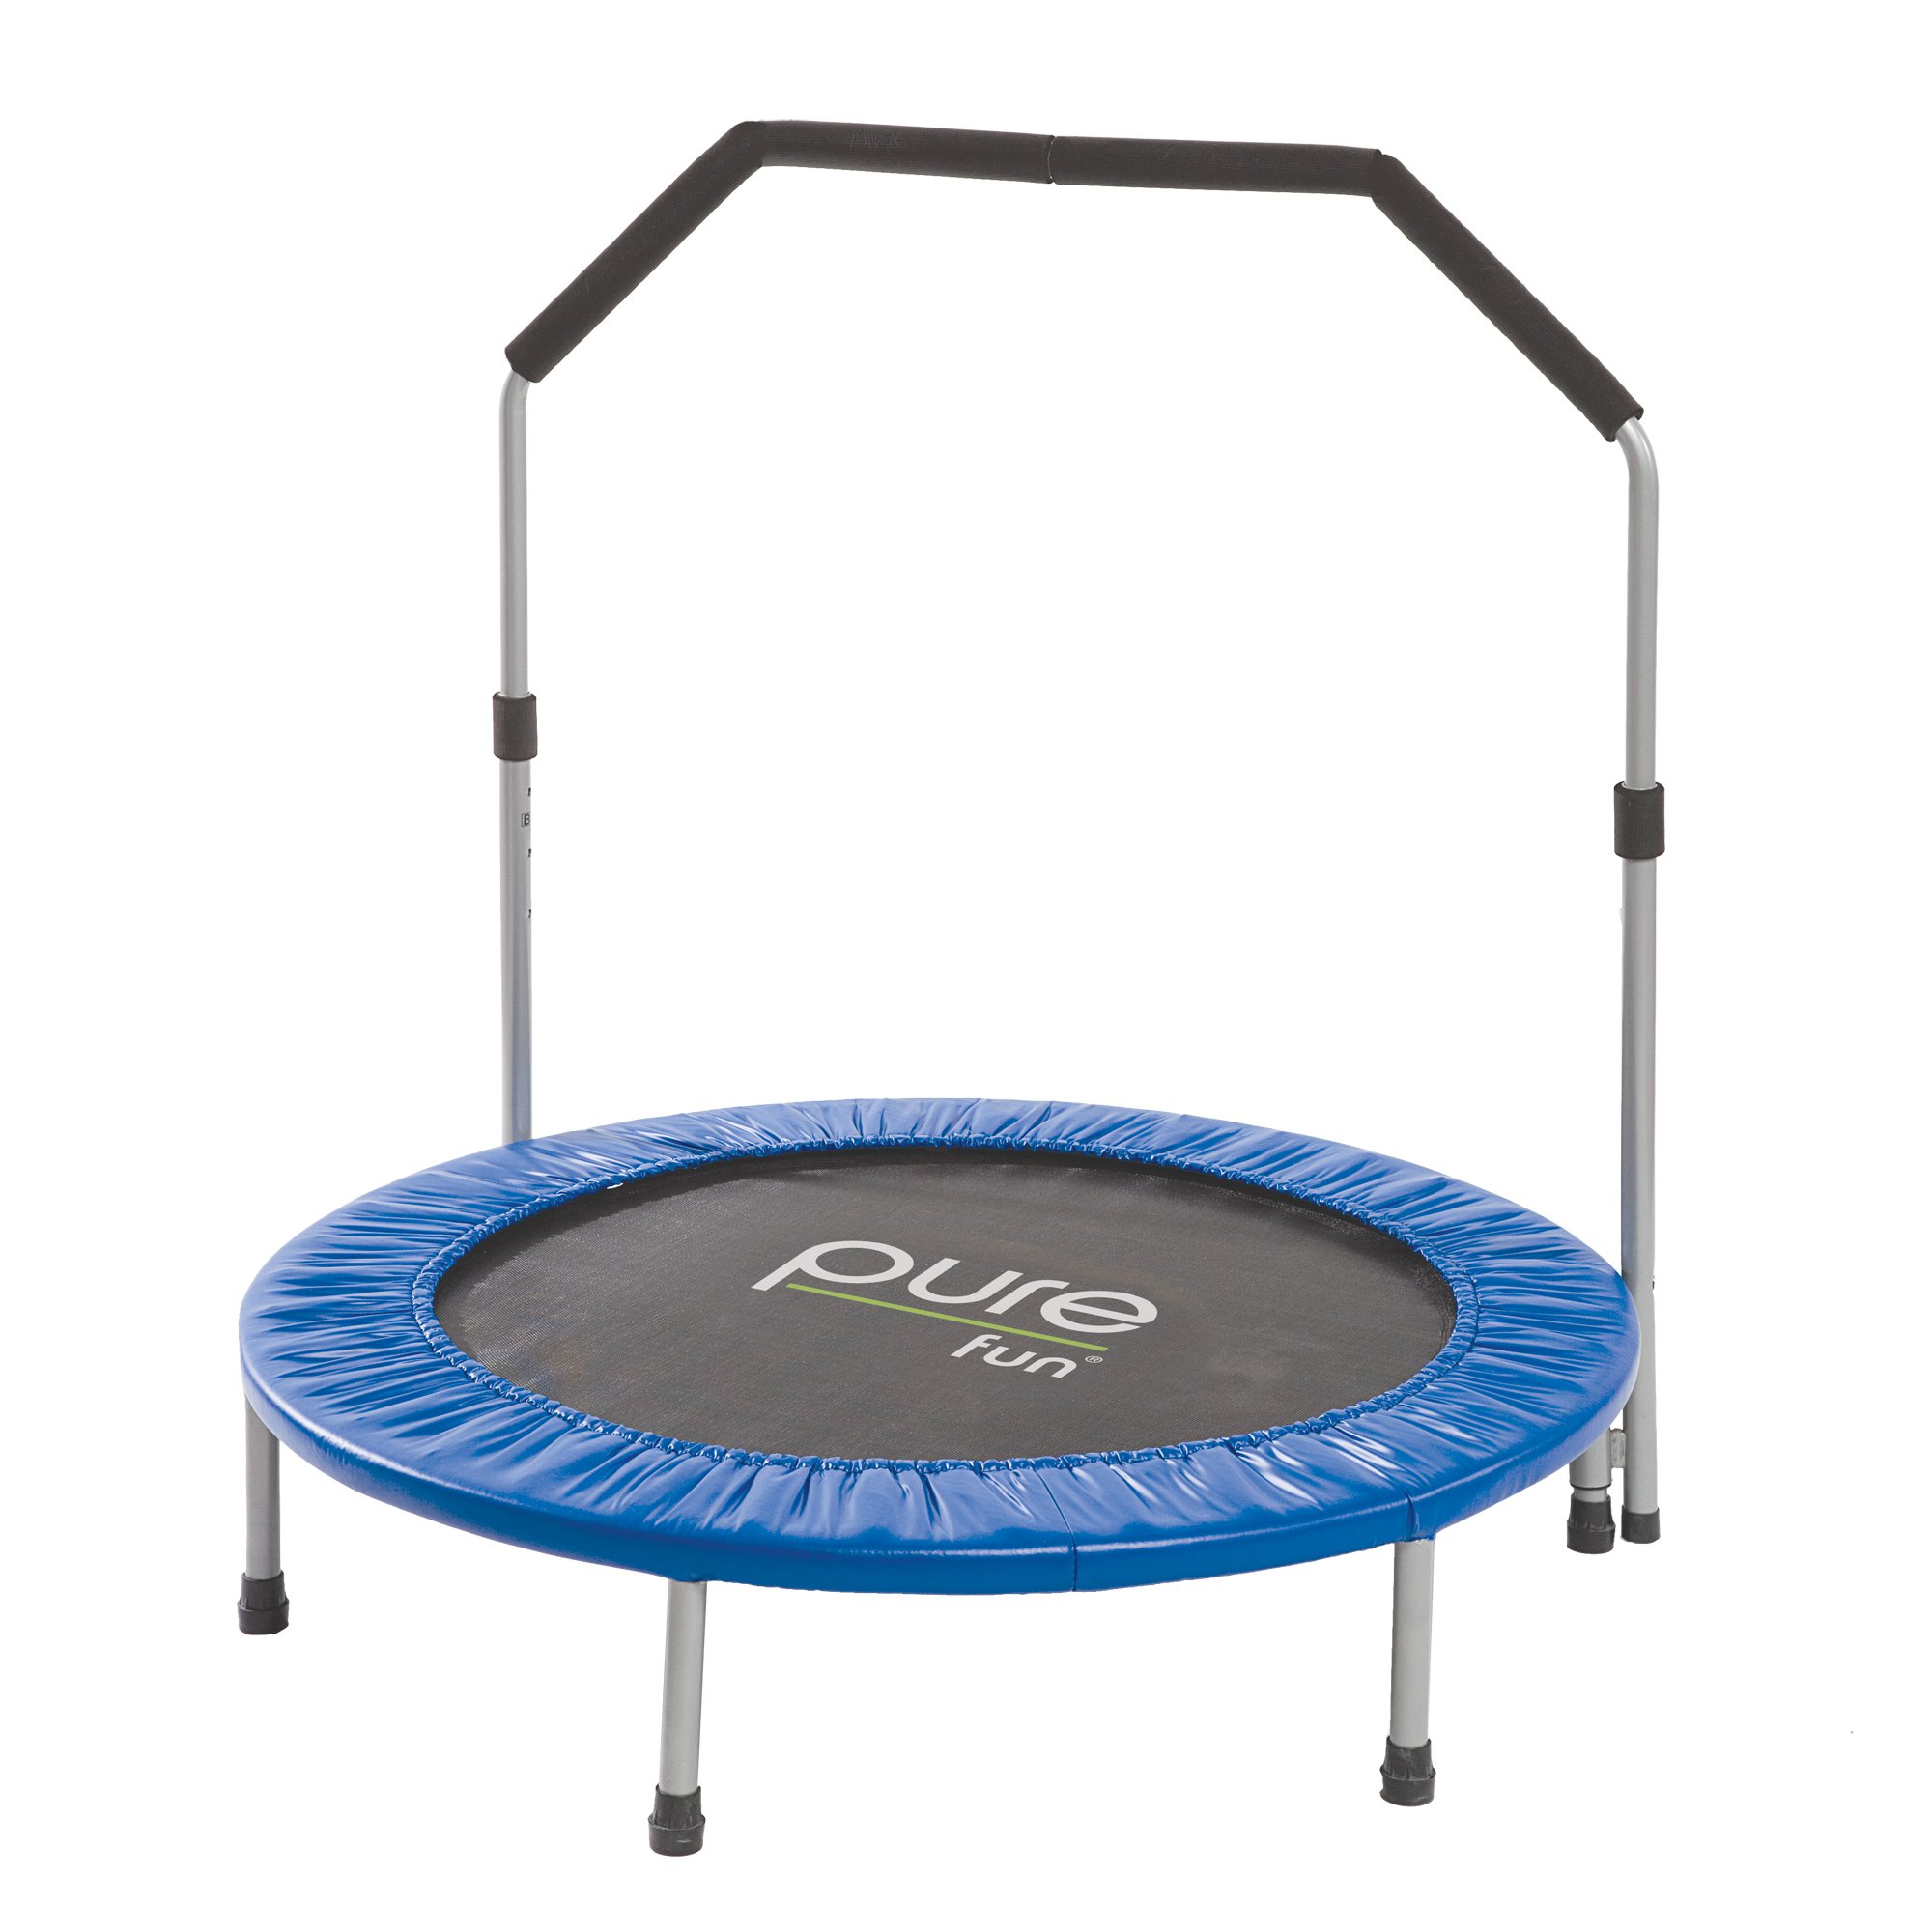 Pure Fun 40'' Mini Rebounder Trampoline with Adjustable Handrail, Ages 13+